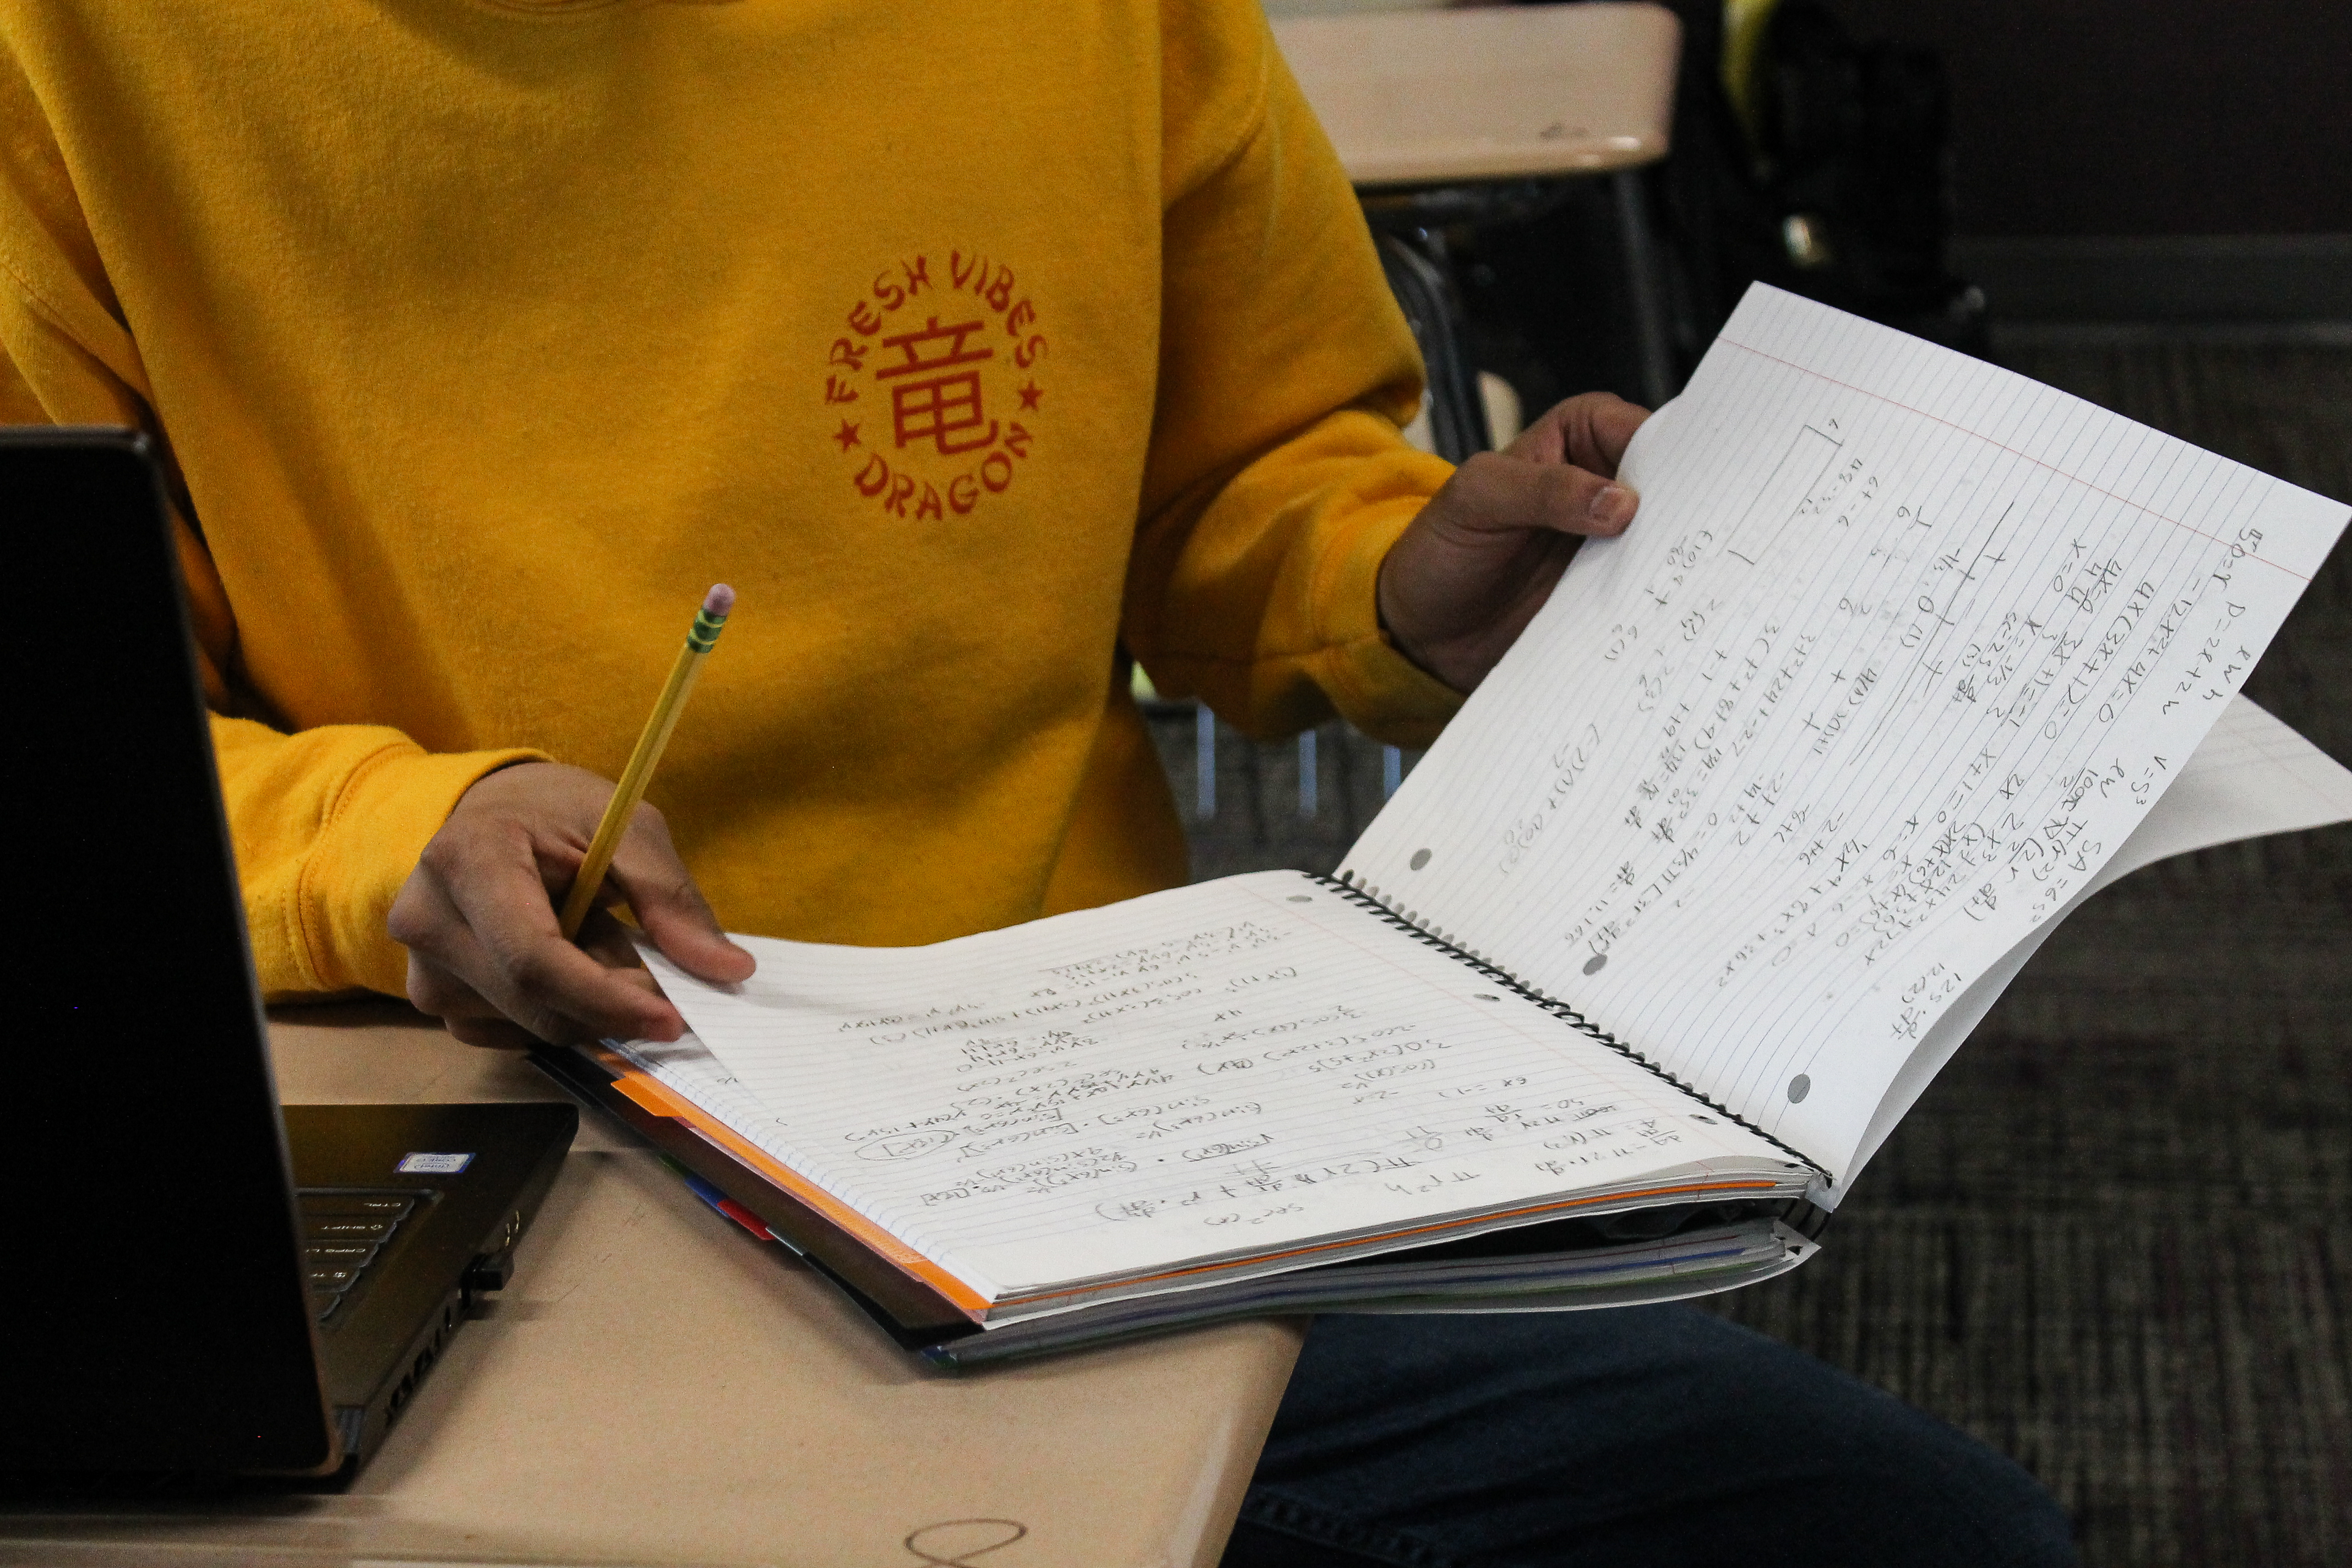 A student in a yellow sweatshirt opens a notebook at their desk.